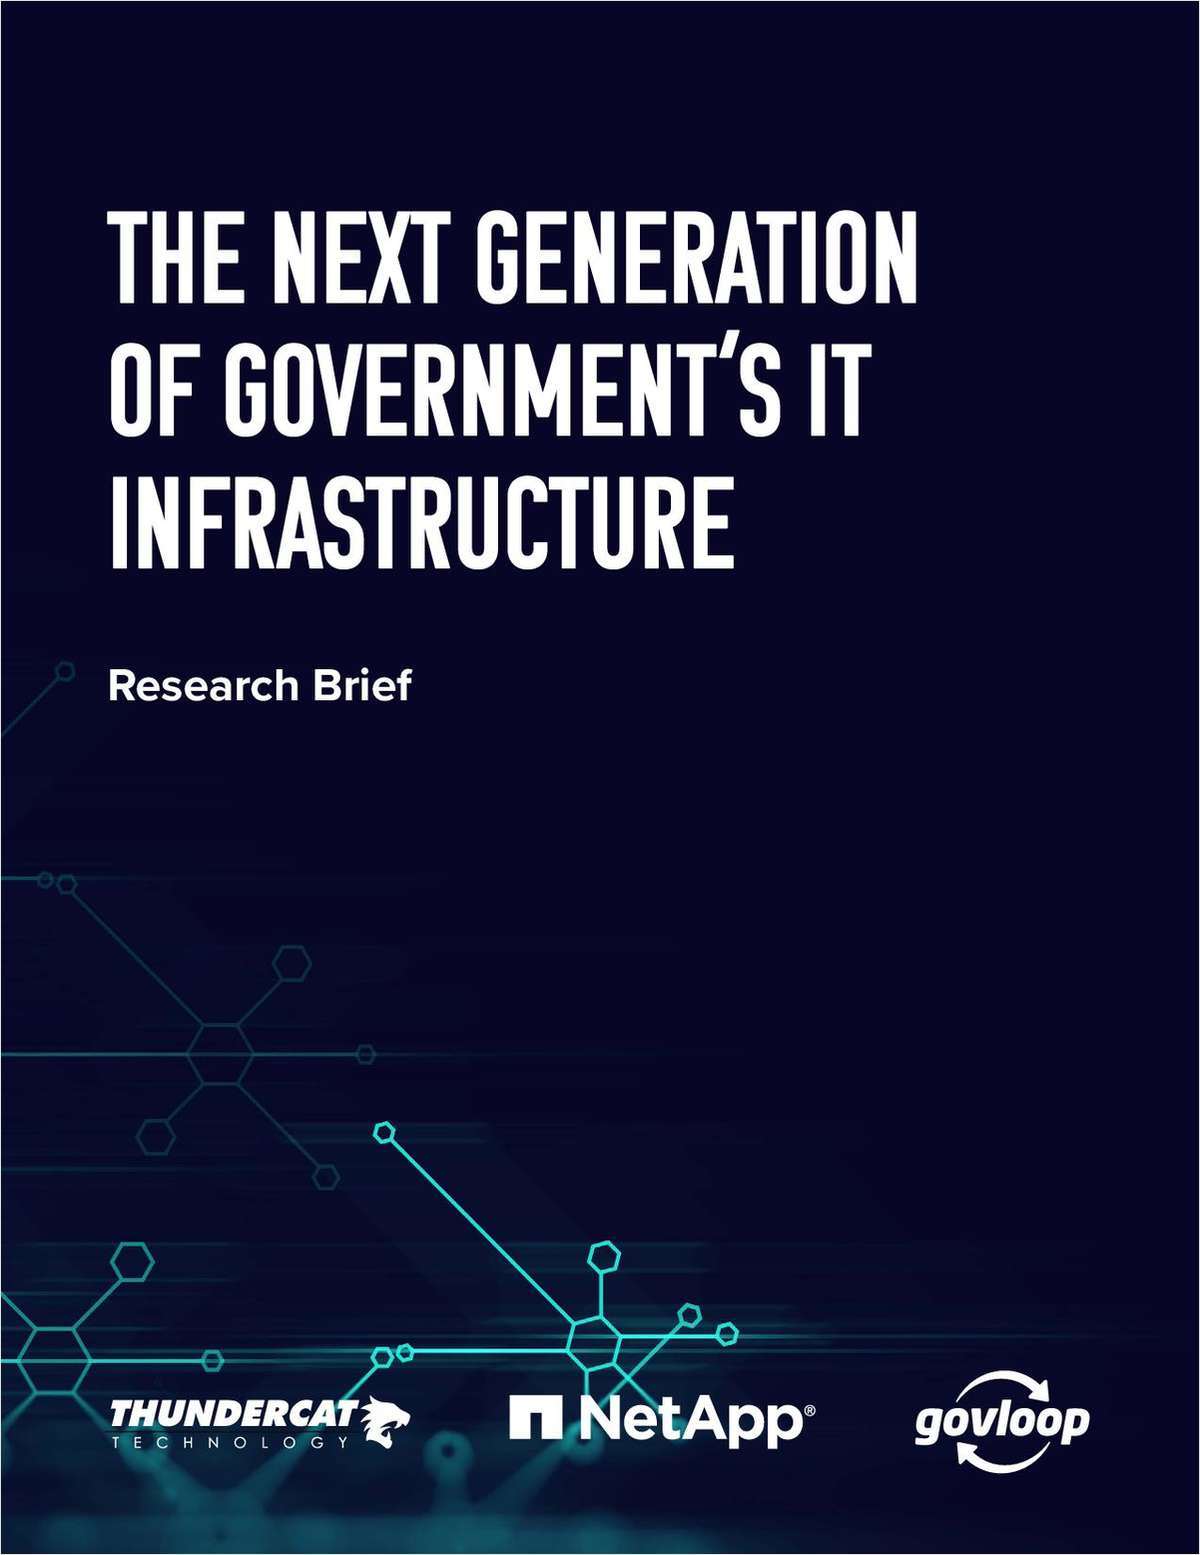 The Next Generation of Government's IT Infrastructure